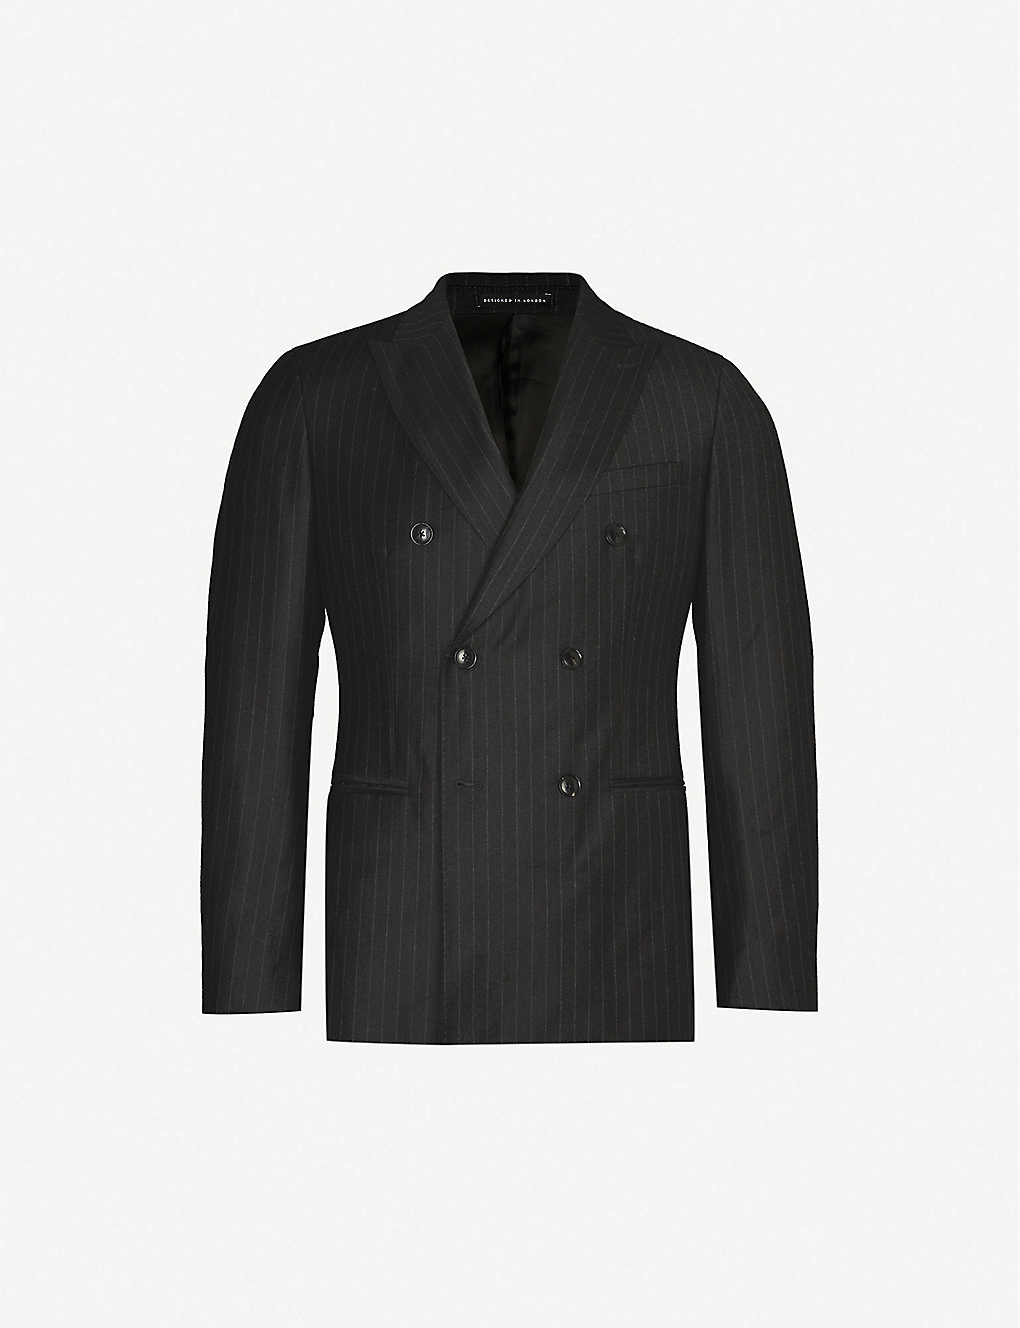 REISS: Salan pinstriped slim-fit wool blazer